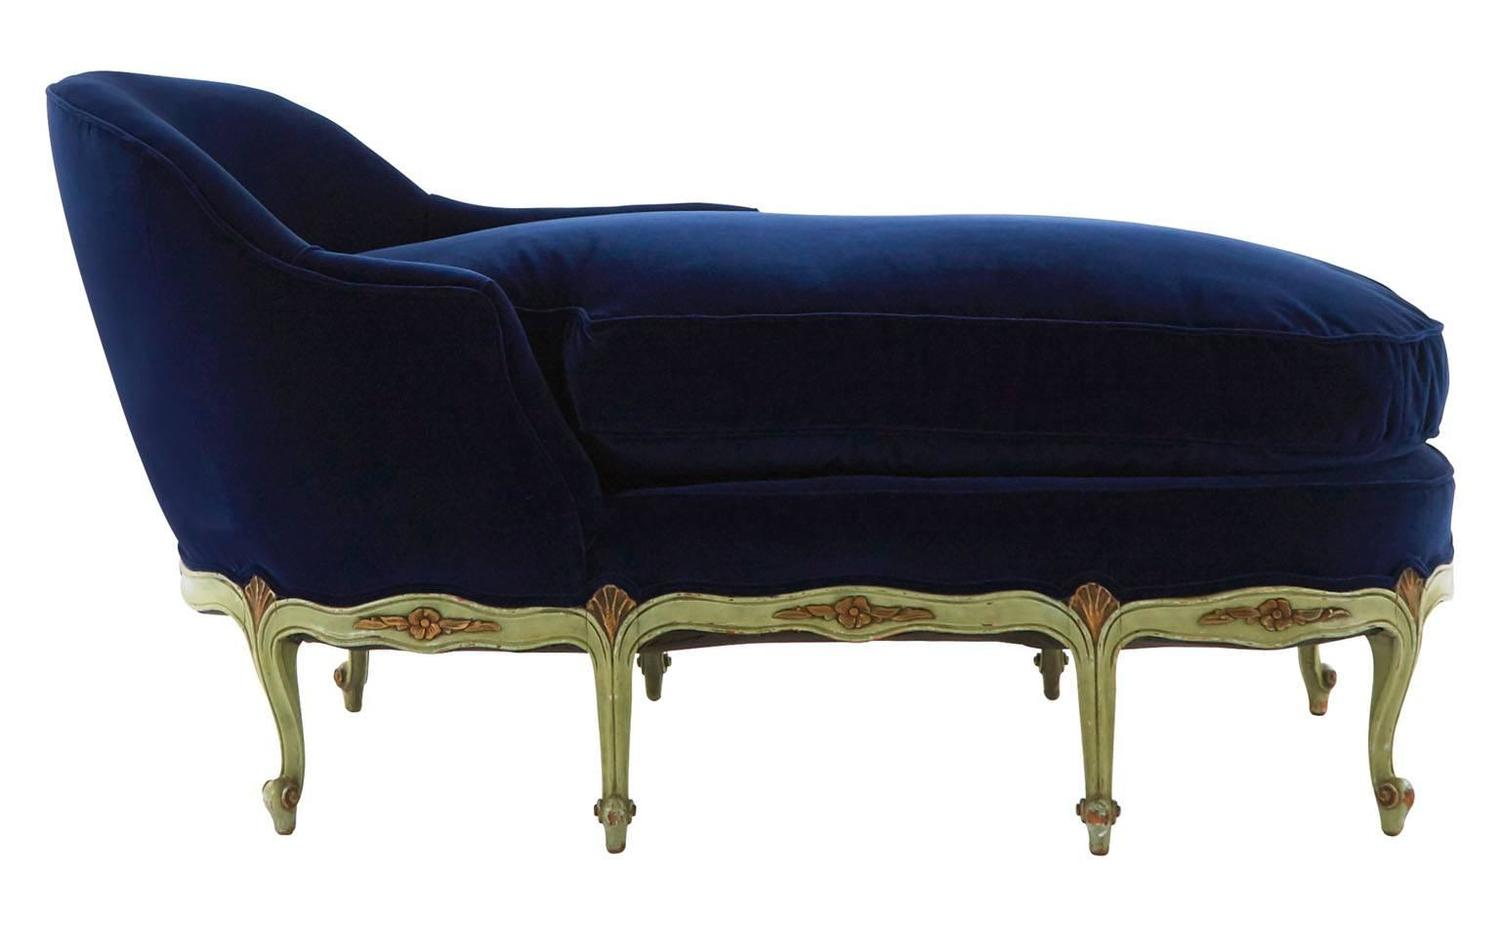 vintage chaise lounge for sale at 1stdibs